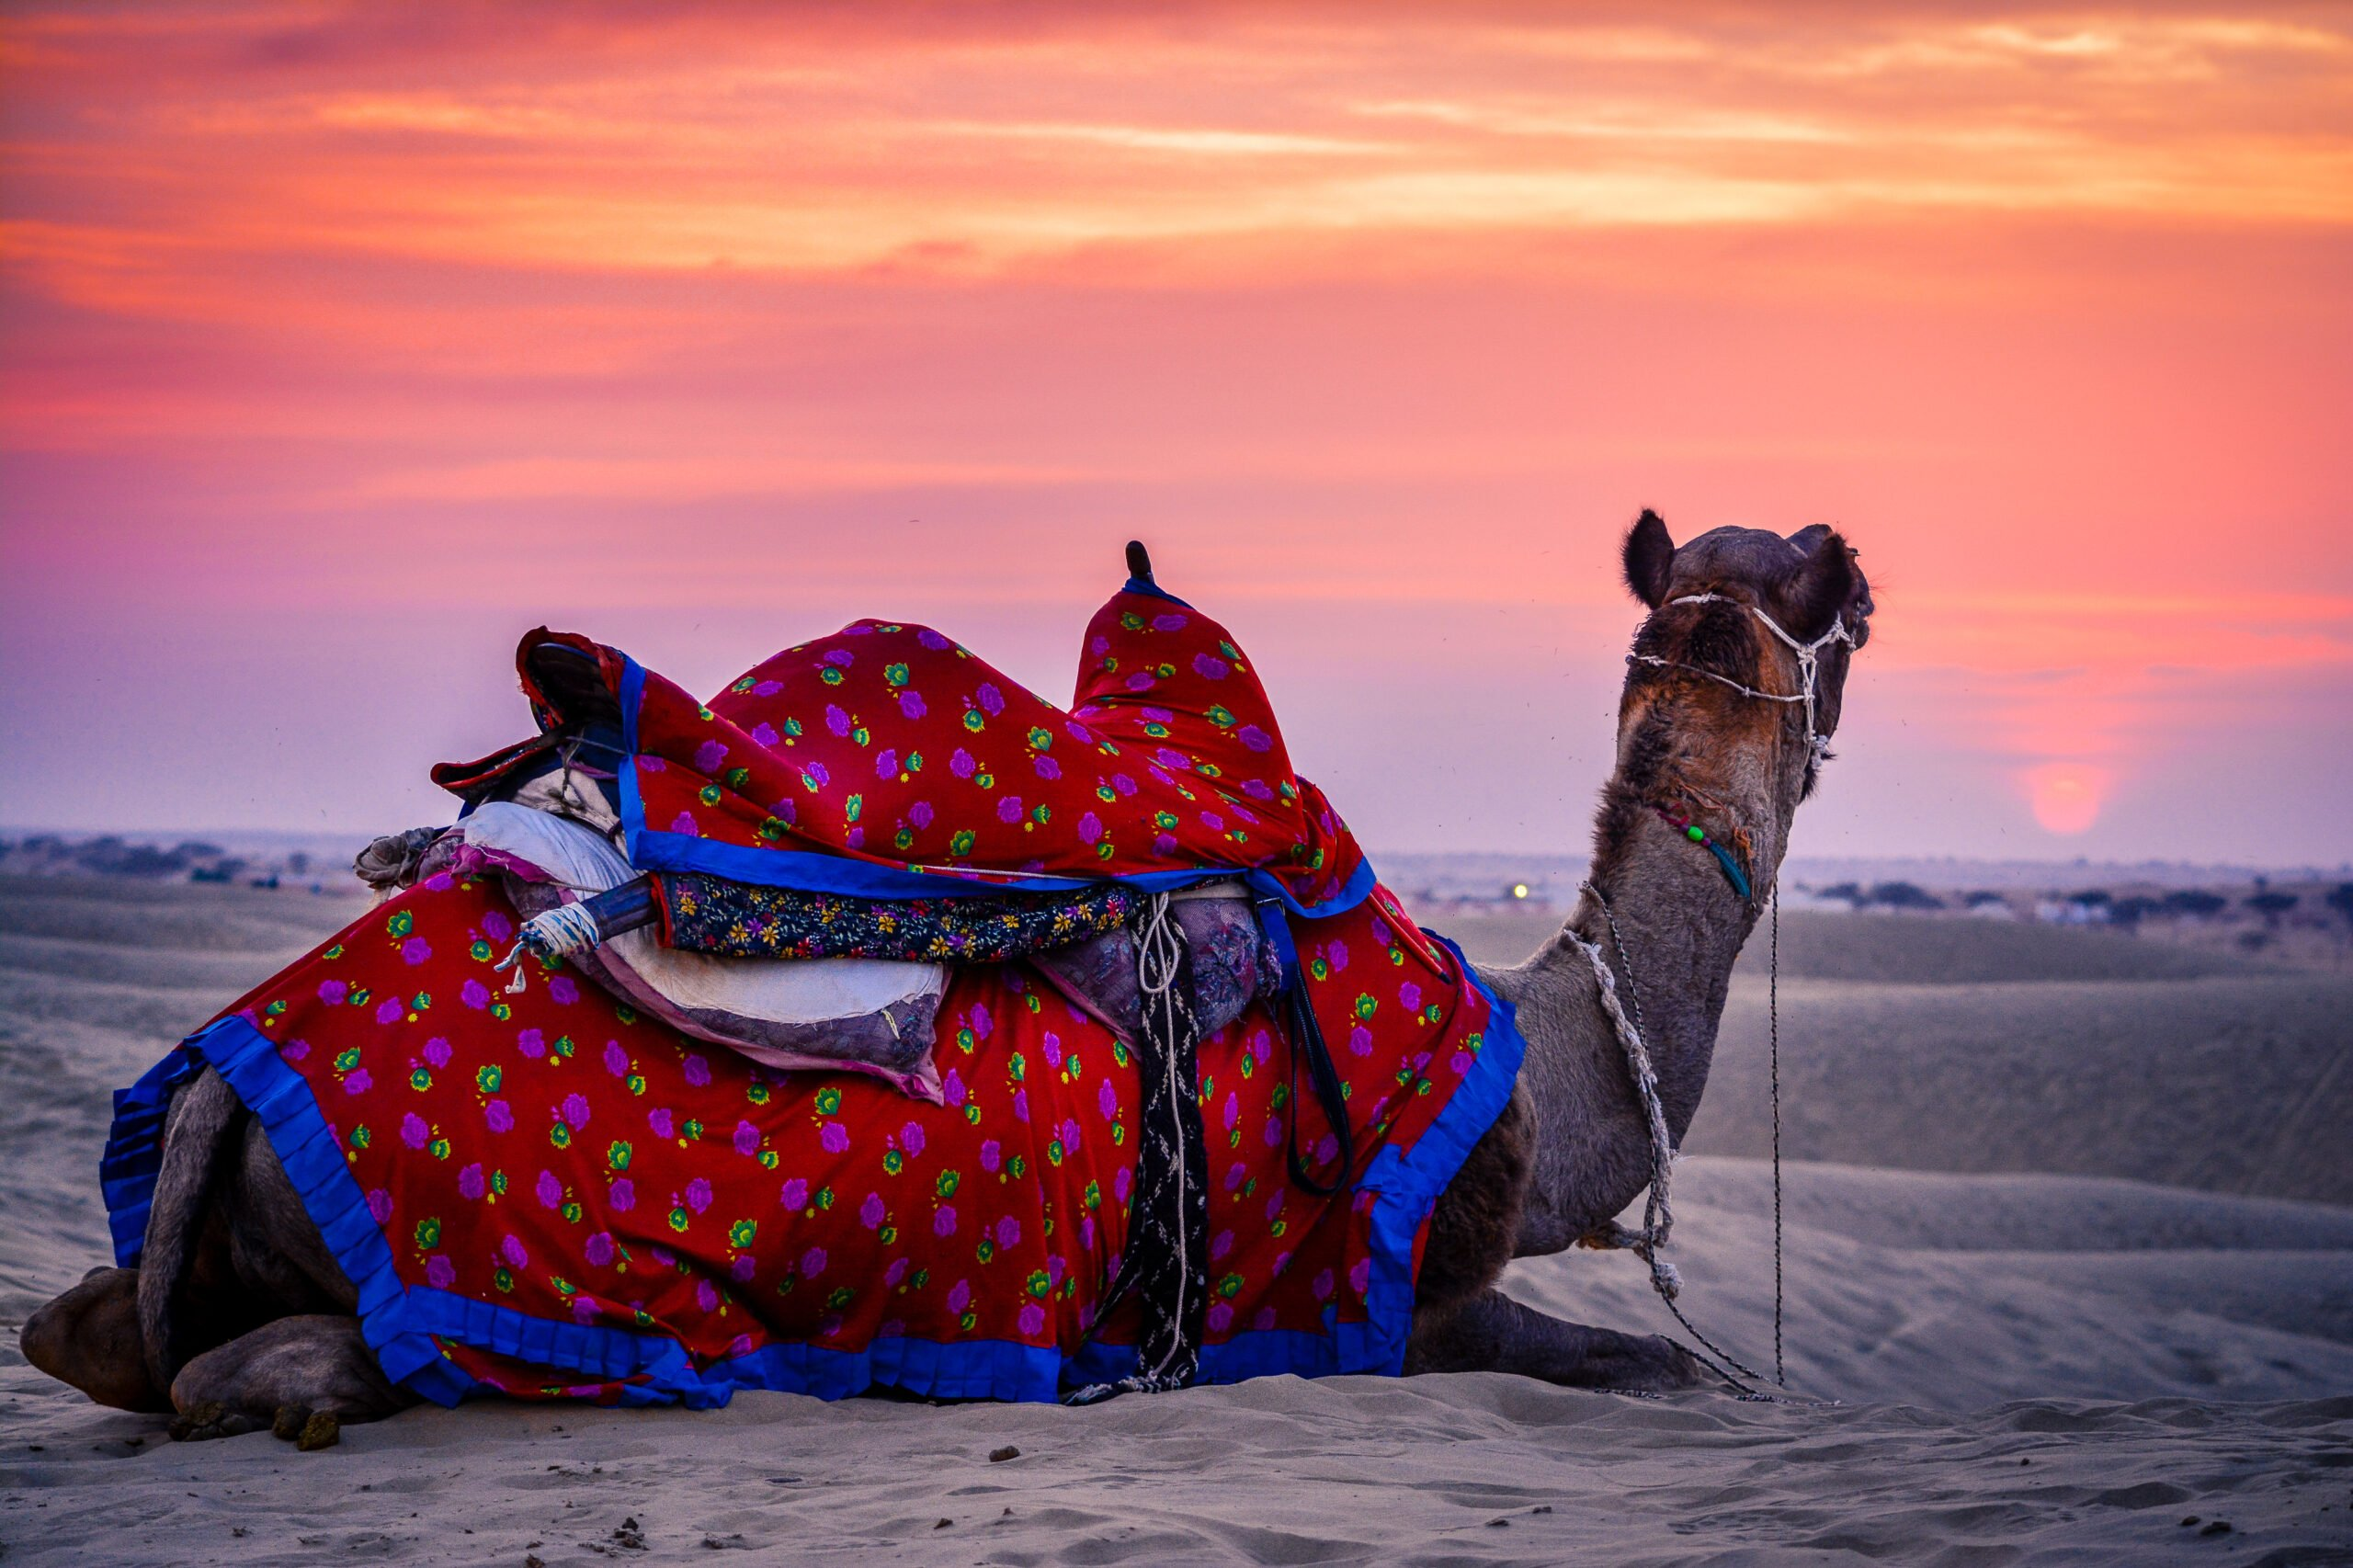 Explore Rajasthan In Our 5 Day Best Of Rajasthan Including Taj Mahal